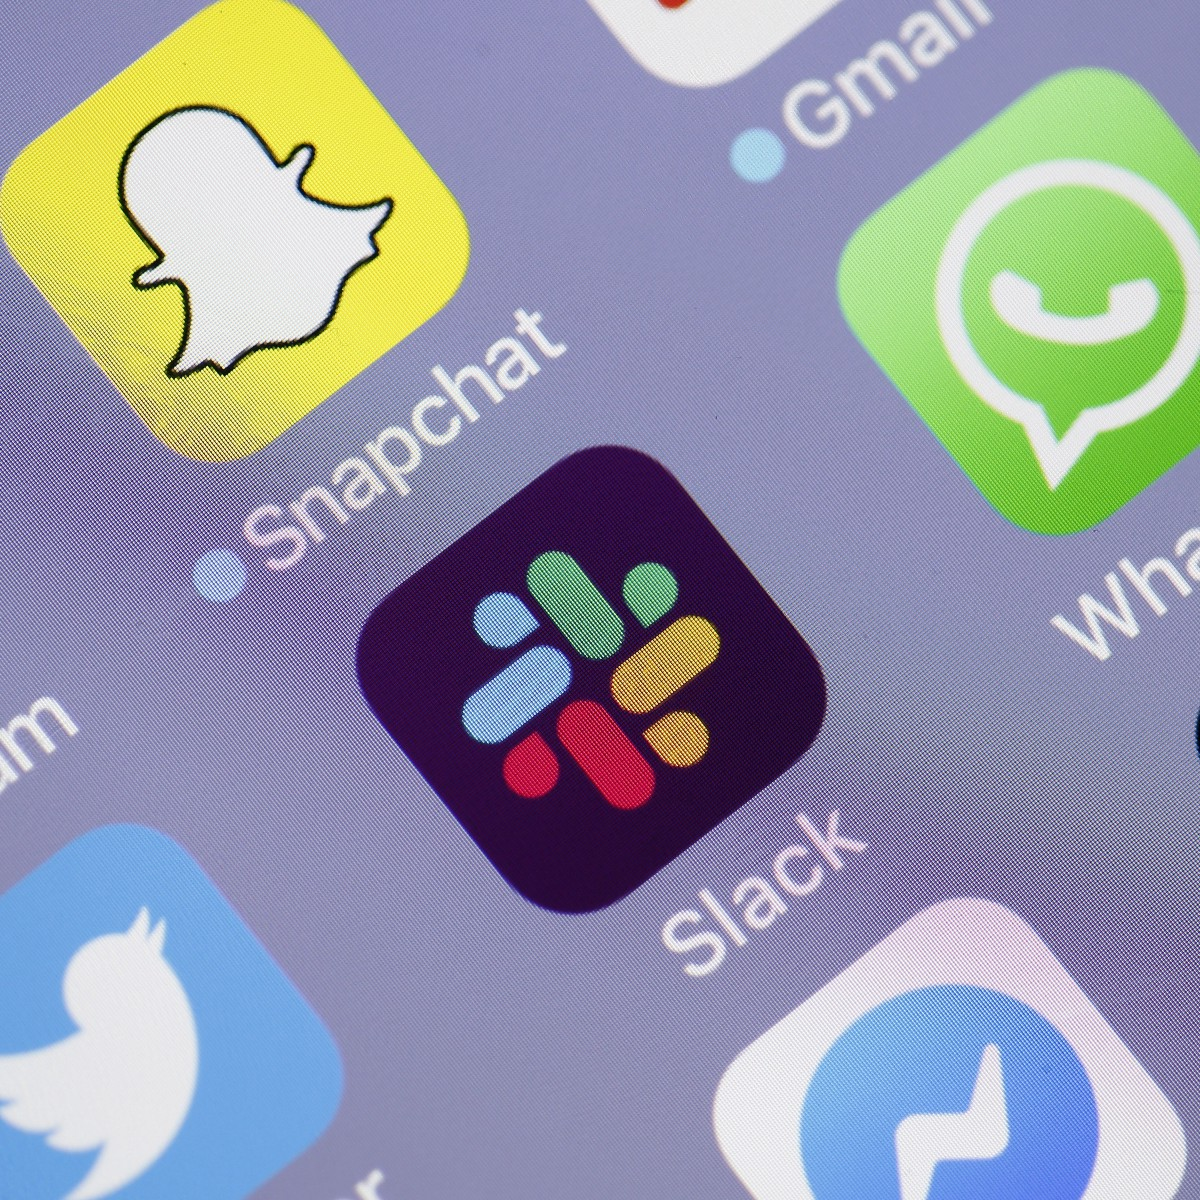 Slack and the Decline of Bots